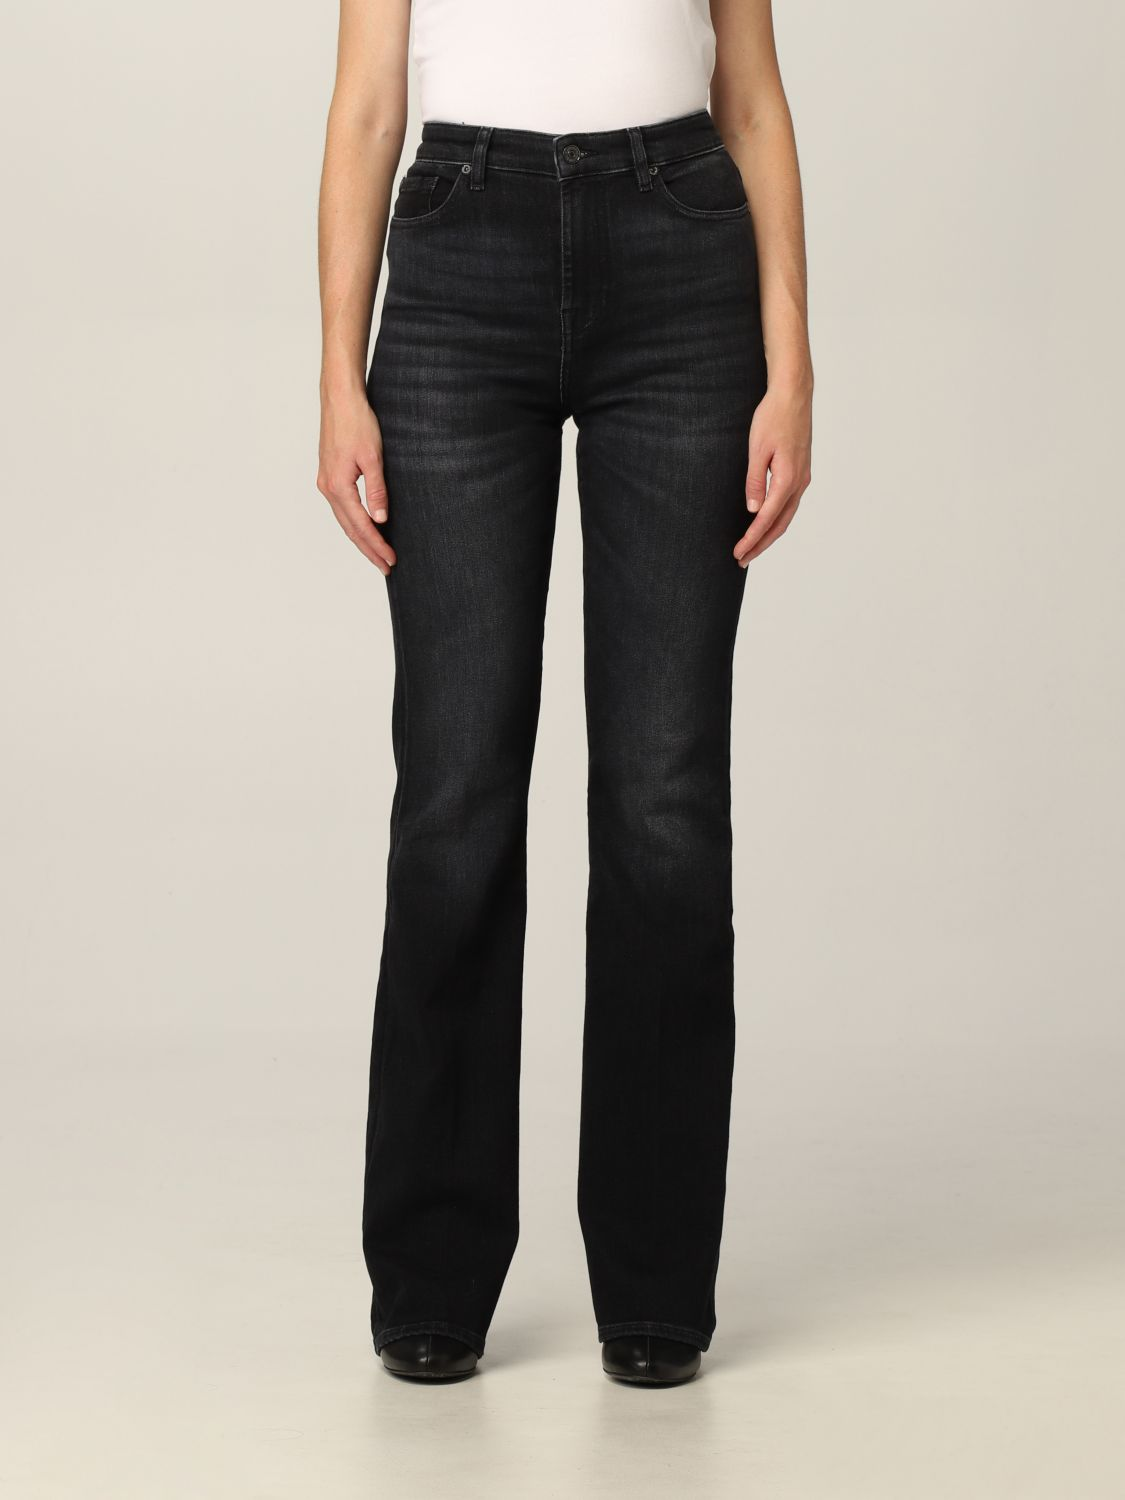 Jeans 7 For All Mankind: Jeans donna 7 For All Mankind nero 1